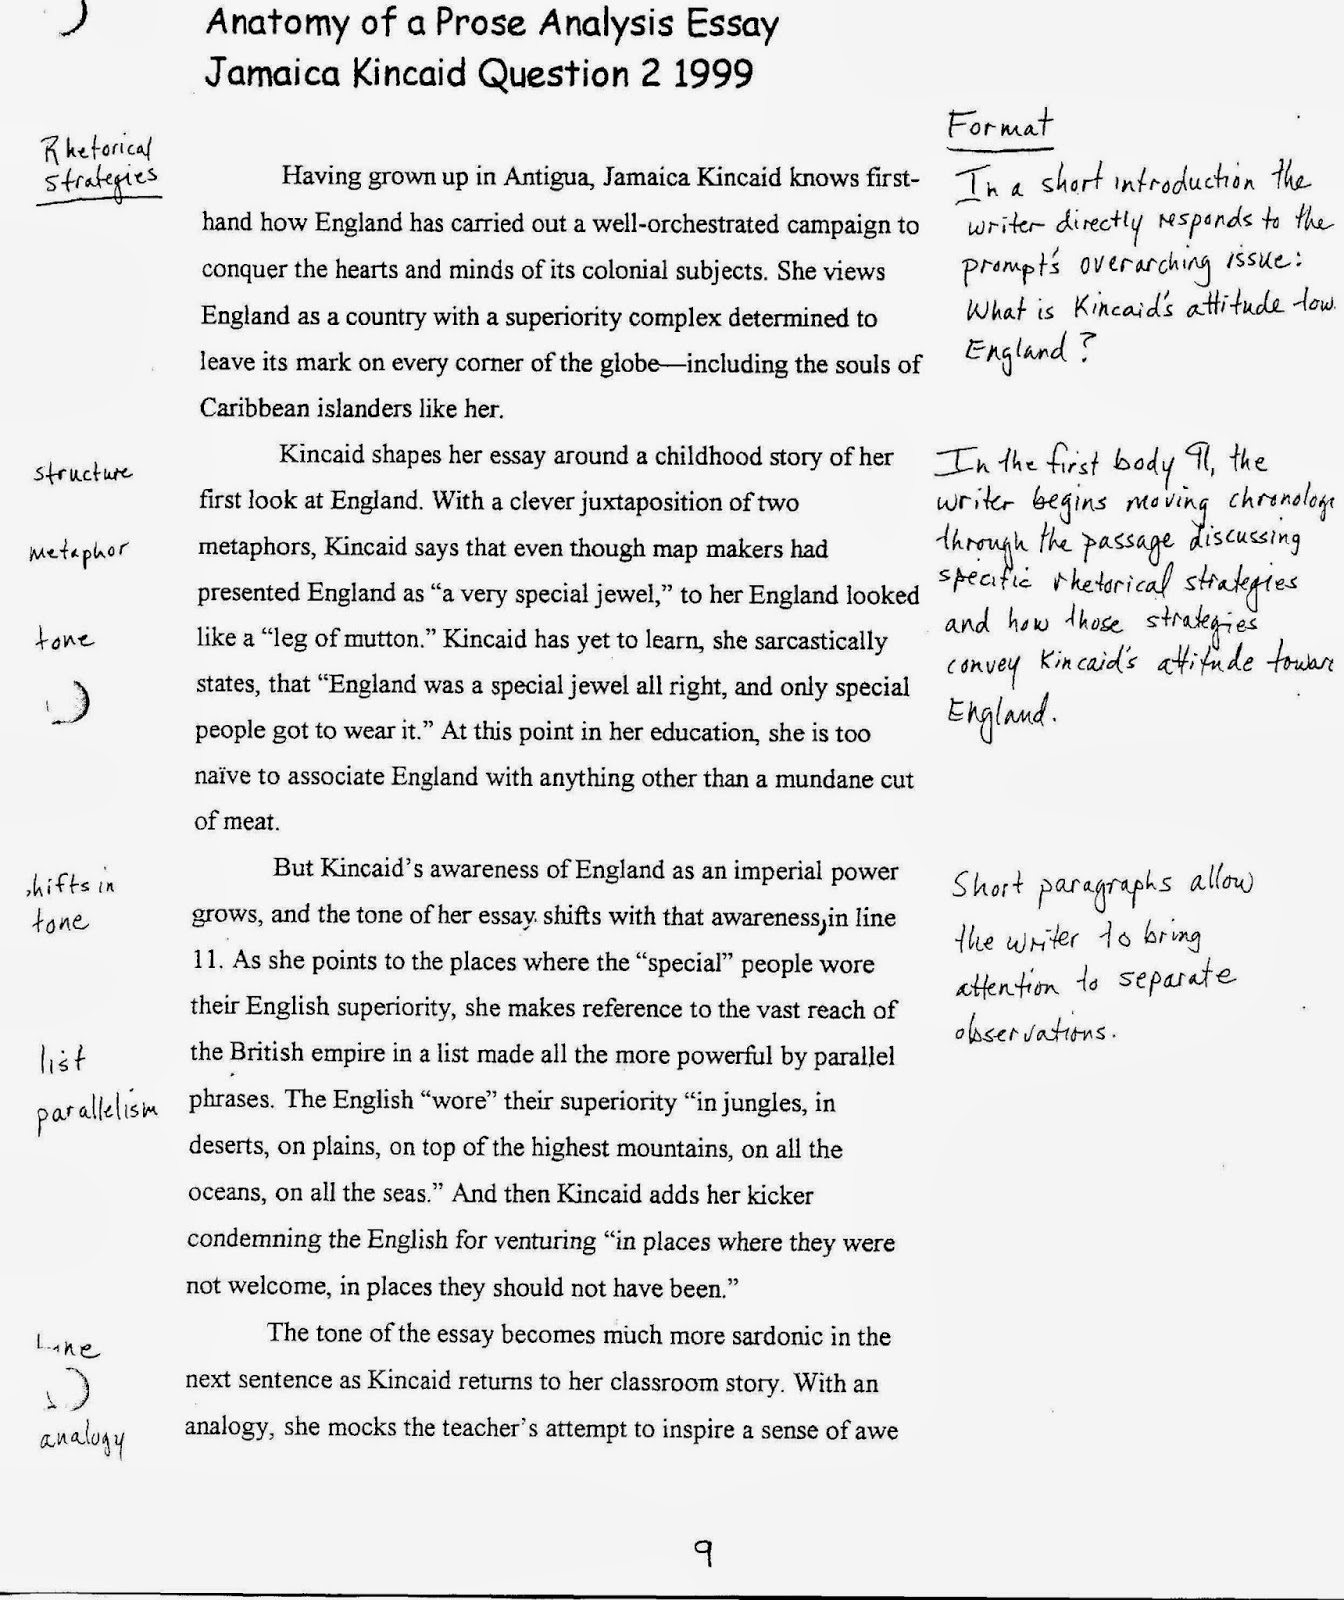 004 Essay Example Rhetorical Examples Of Analysis Essays Goal Blockety Co Using Ethos Pathos And Logo Logos